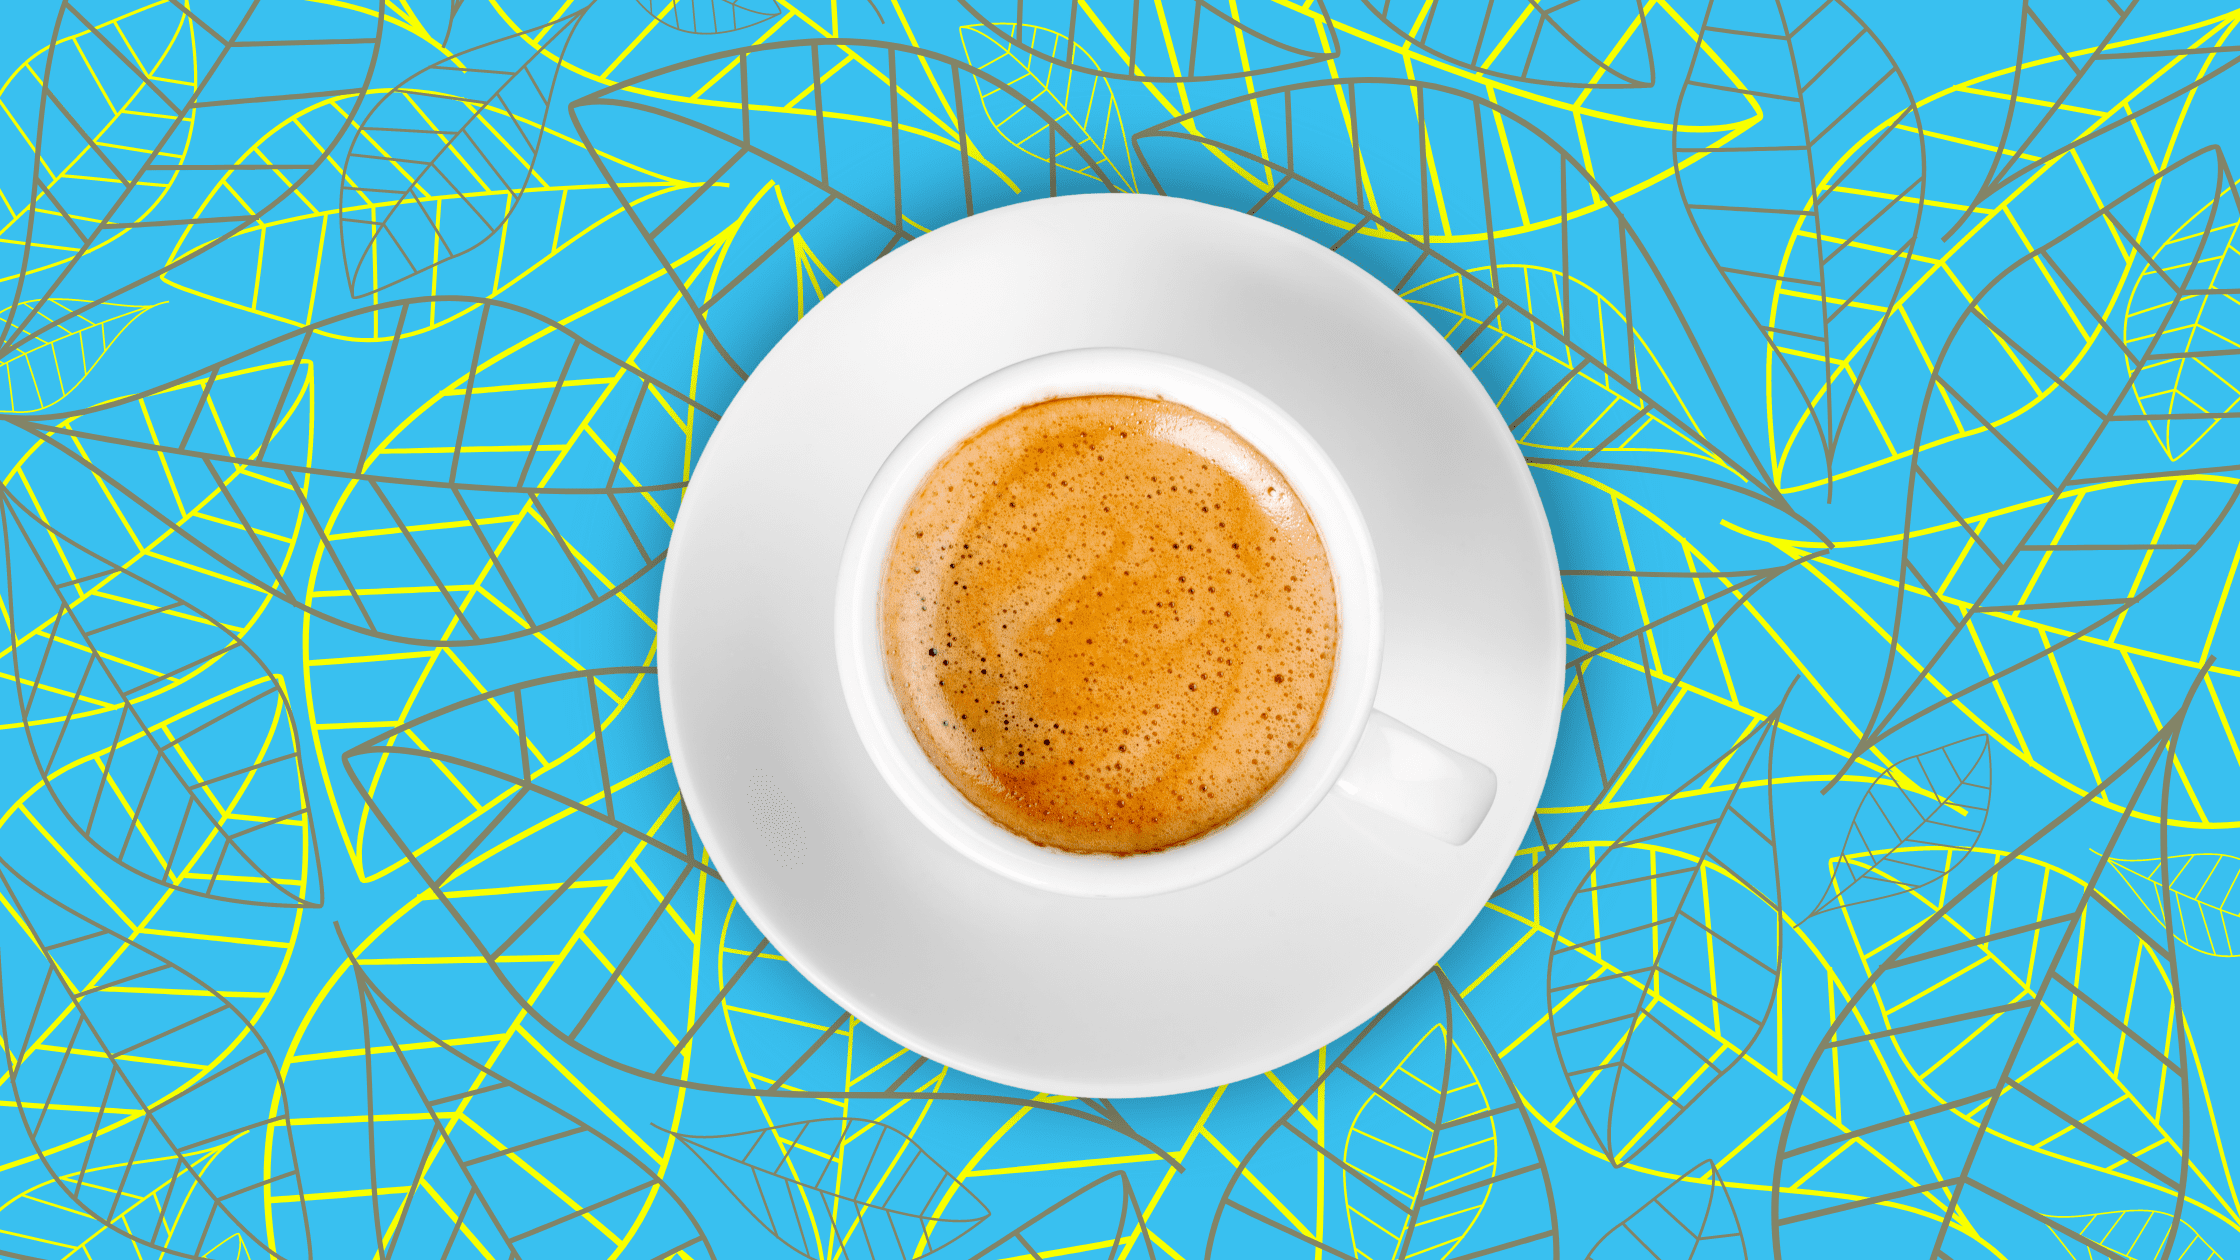 cup of coffee on vibrant background